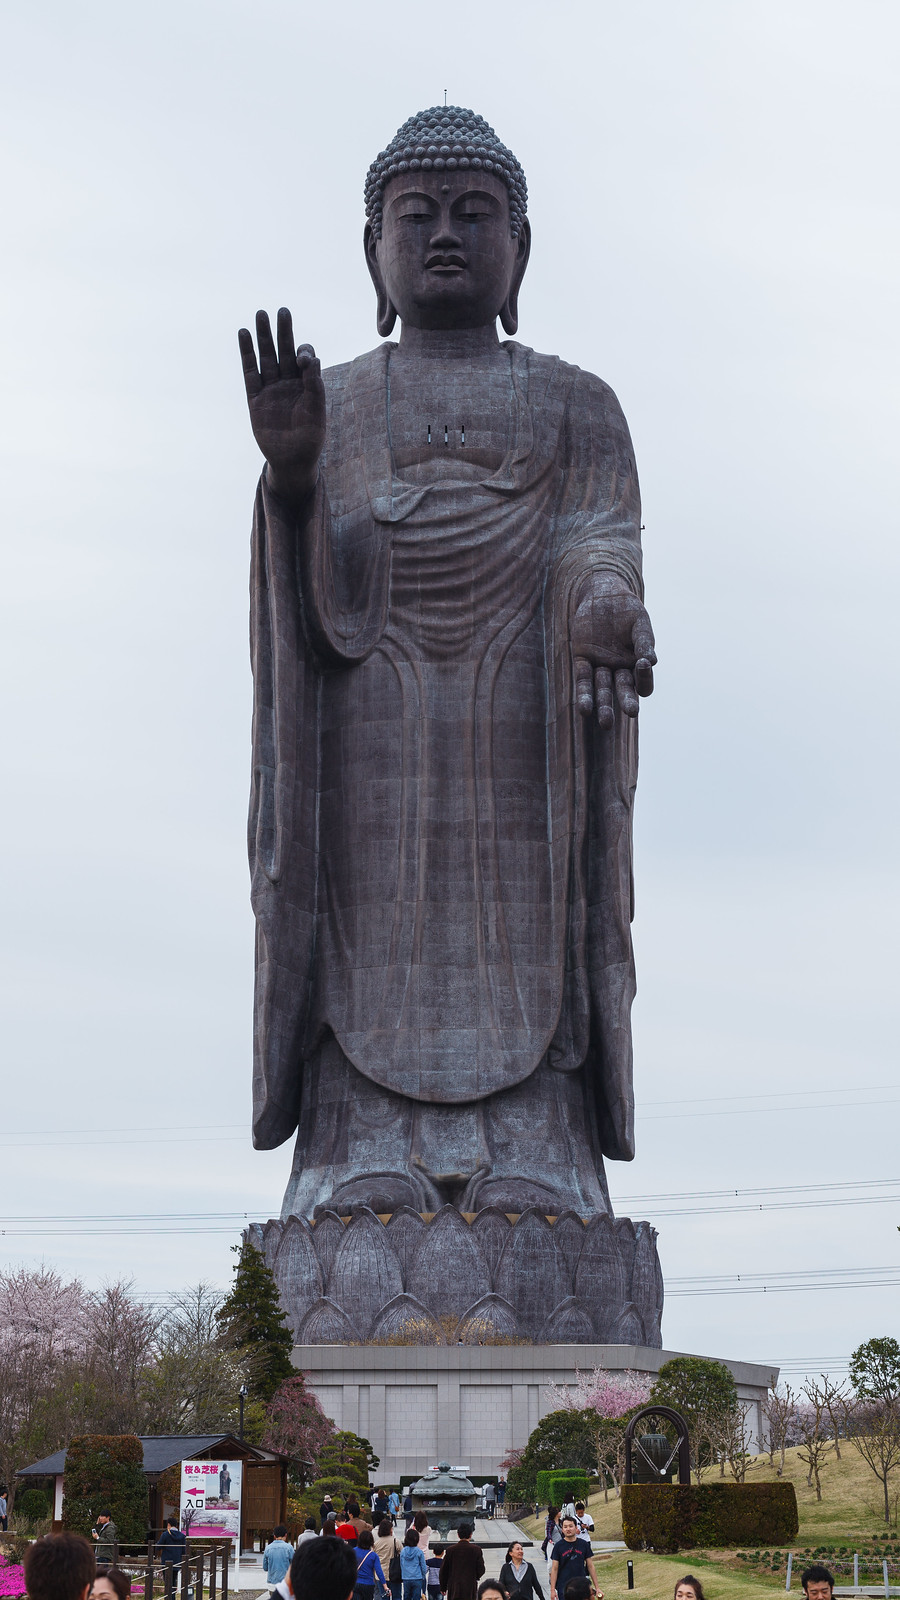 20160412_01_large statue of Buddha & Cherry Blossoms Phlox subulata